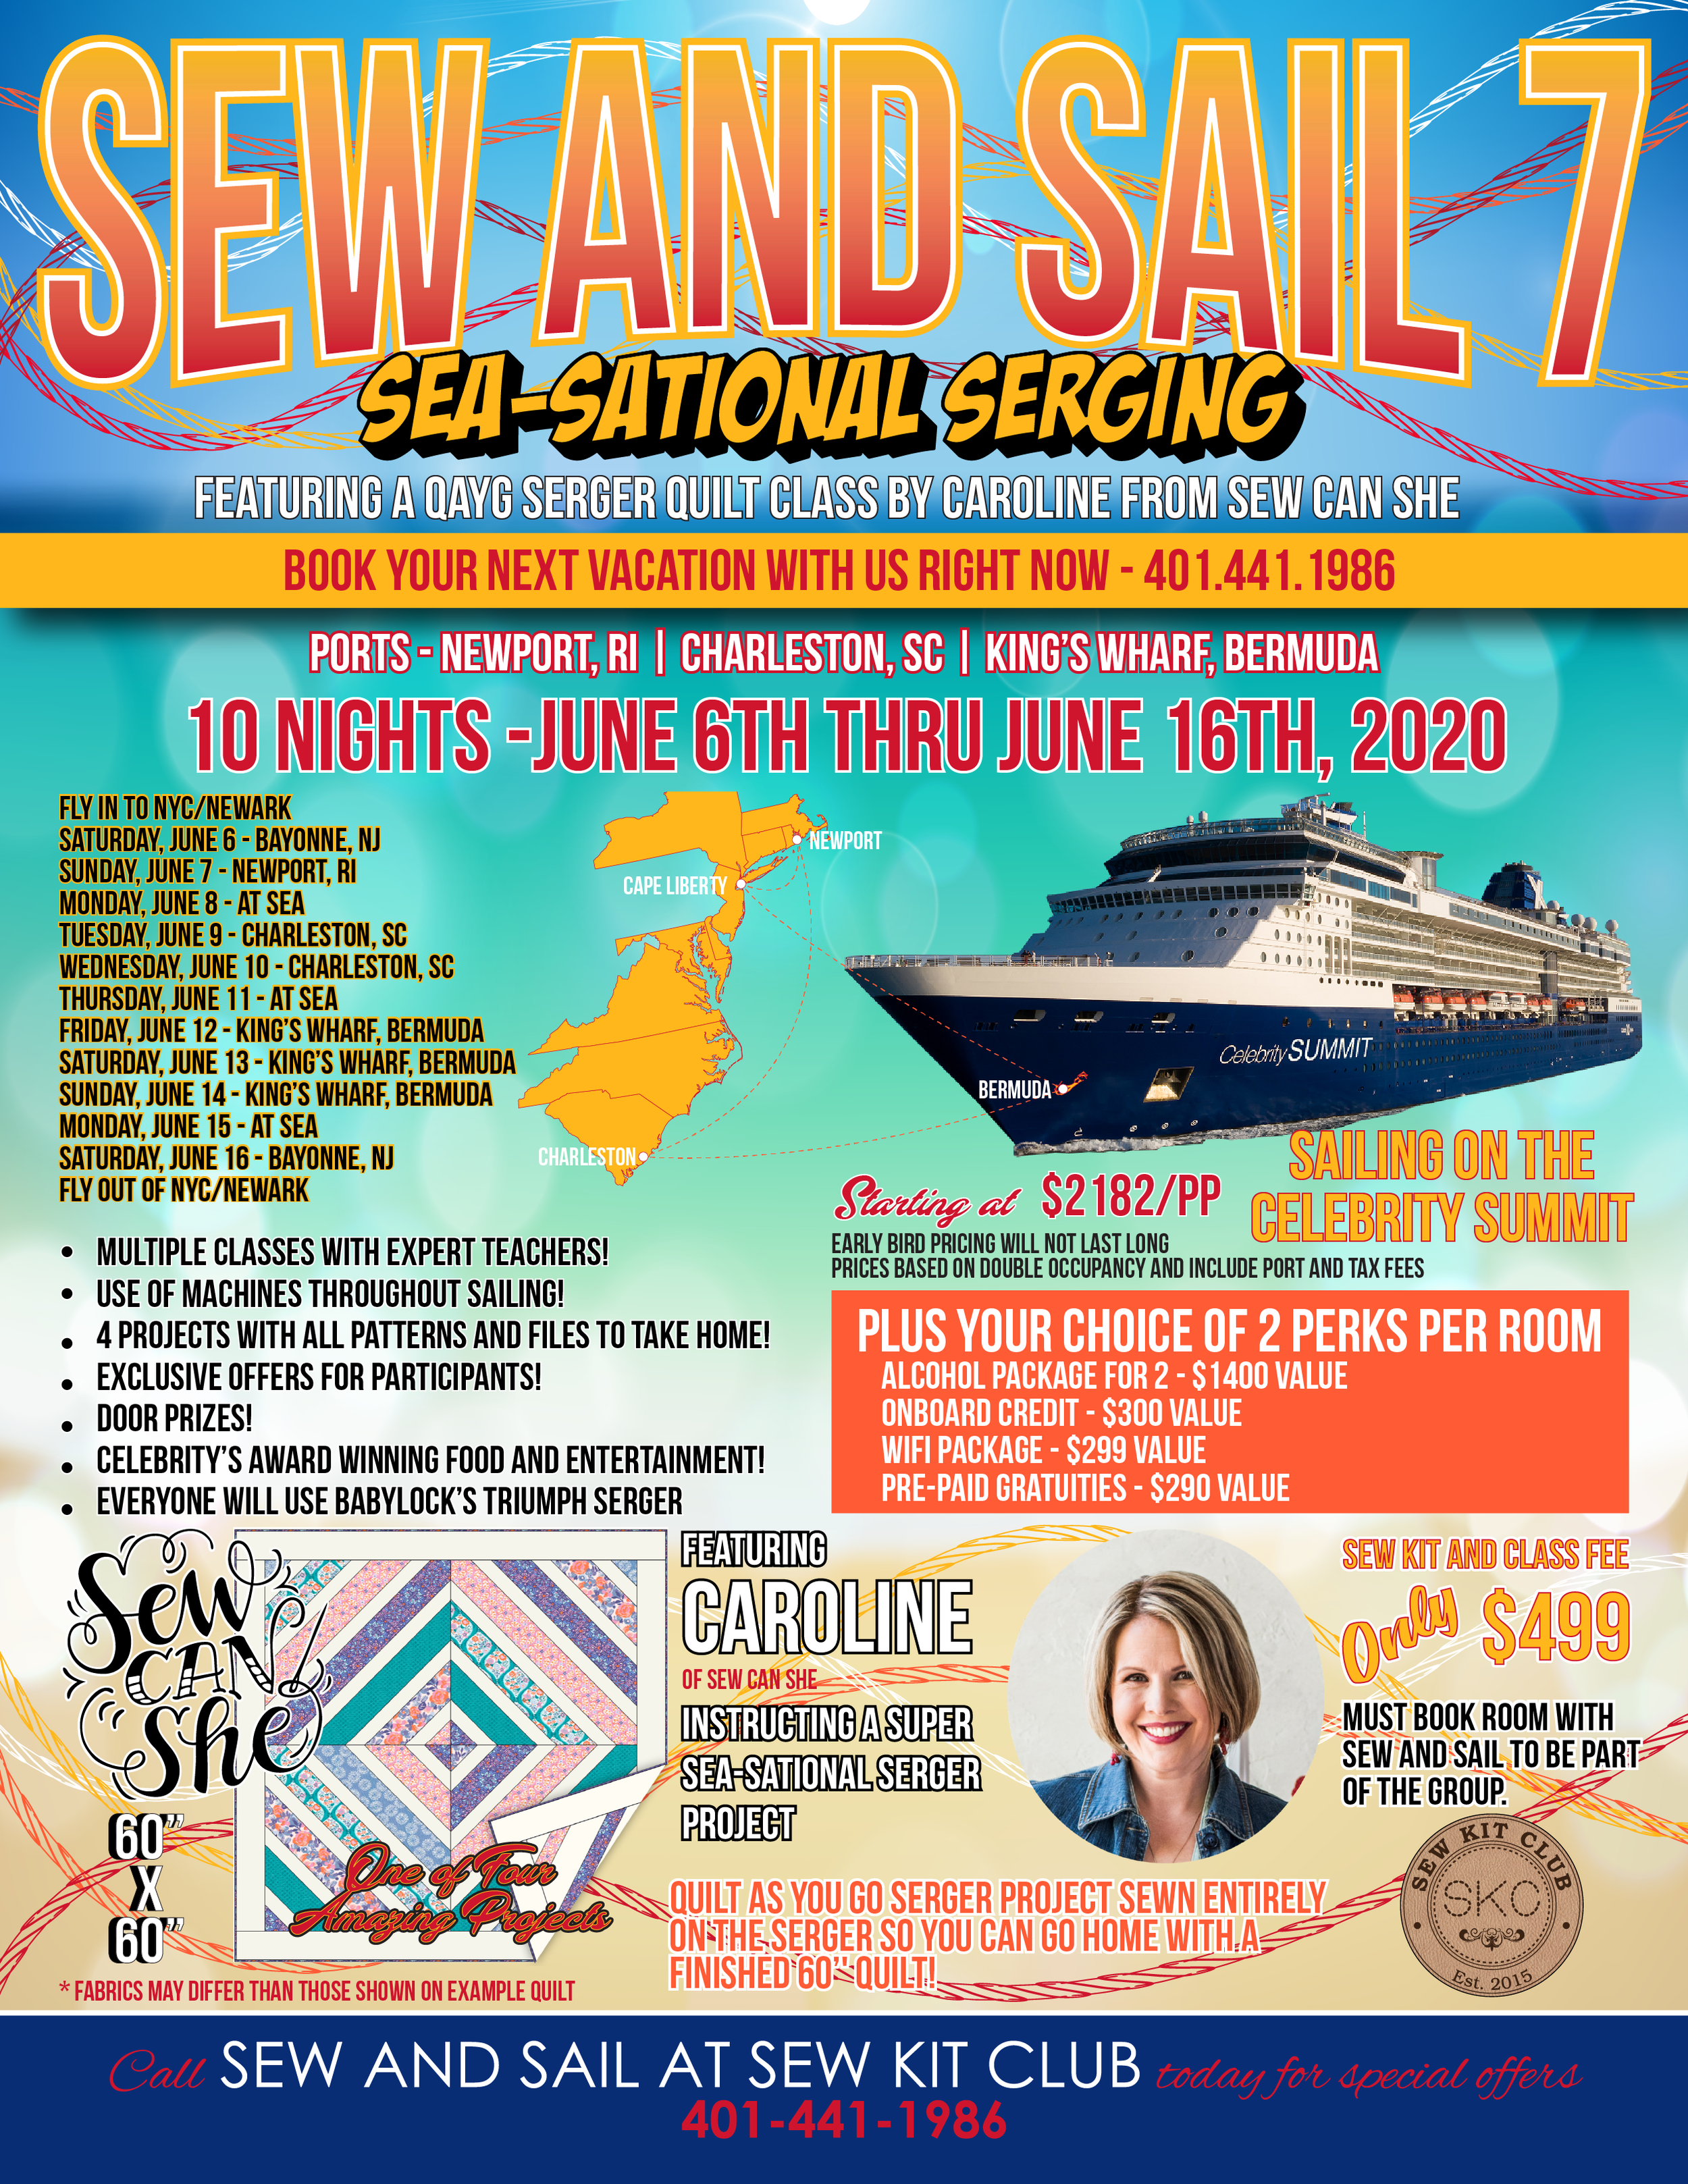 Come With Me On An Exciting Serger Cruise To Bermuda